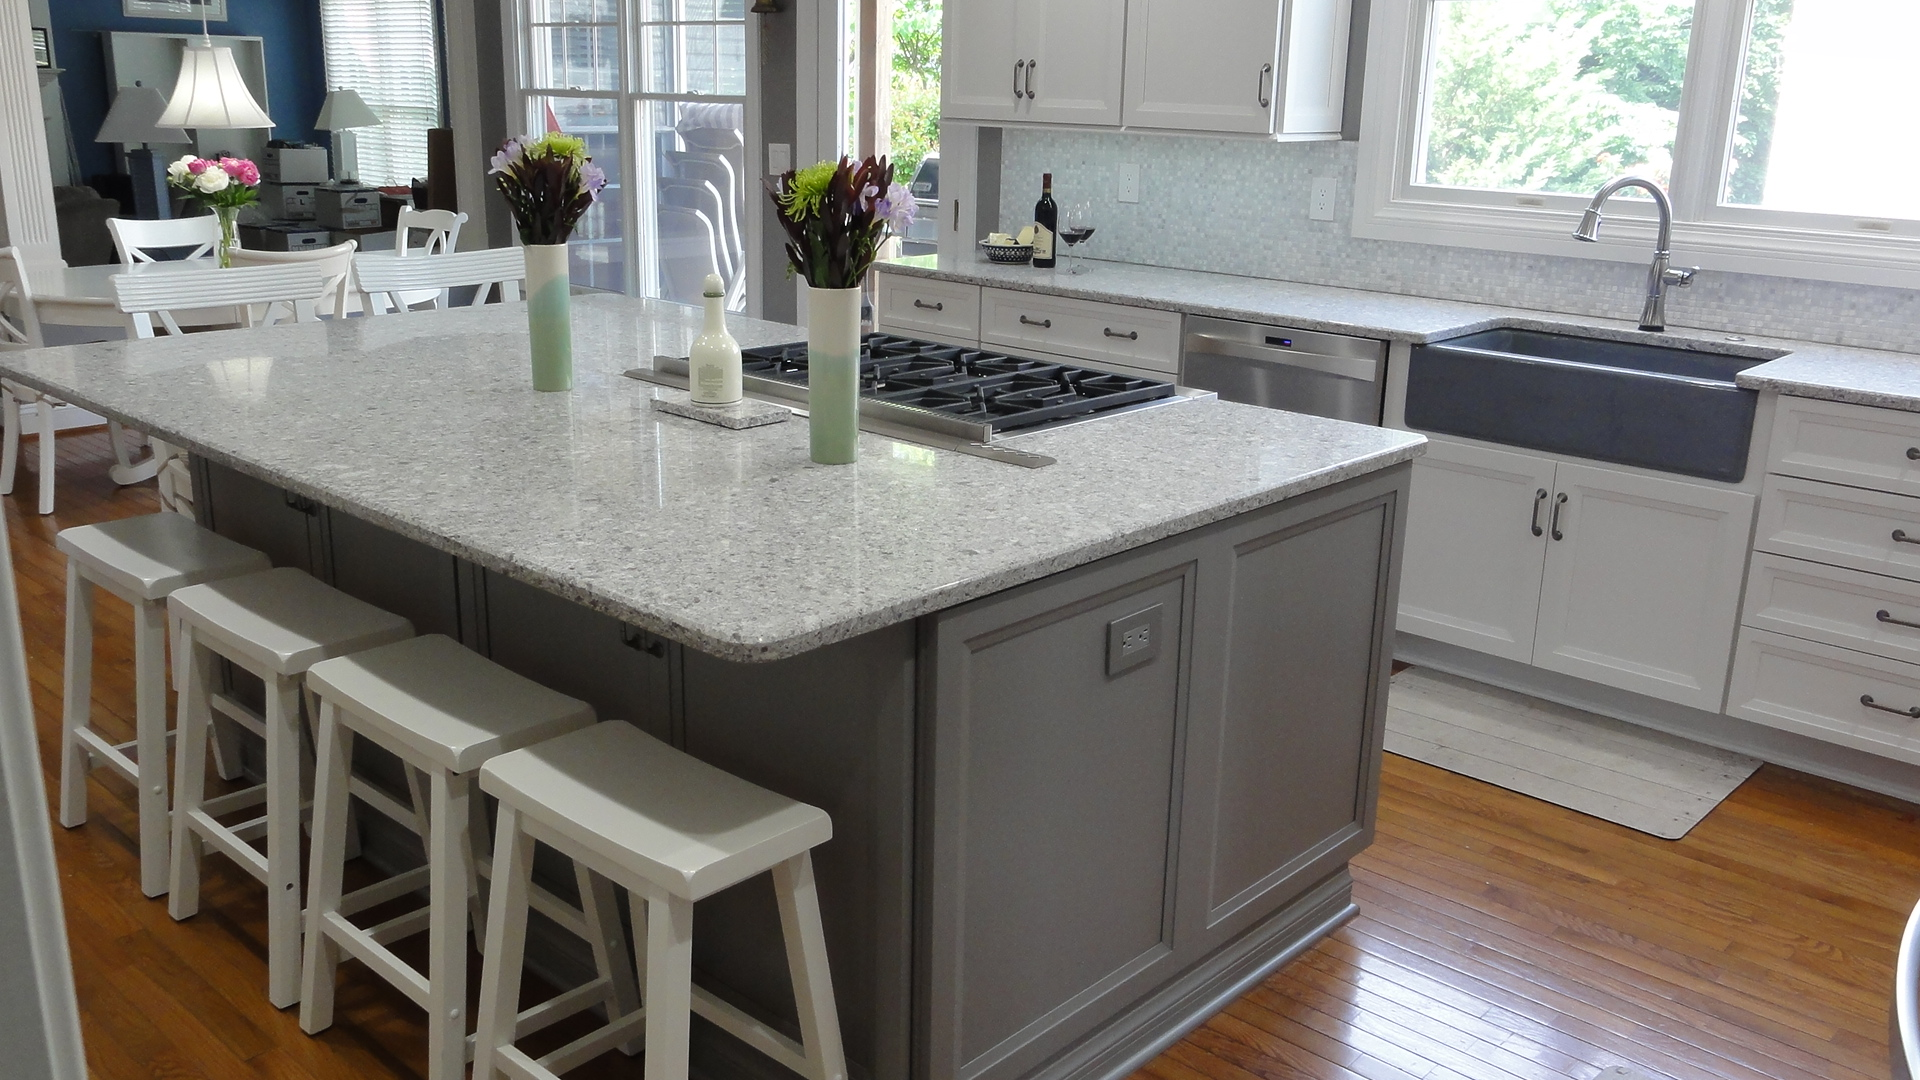 Countertop Options-Weve Got Them! - Cabinet Discounters